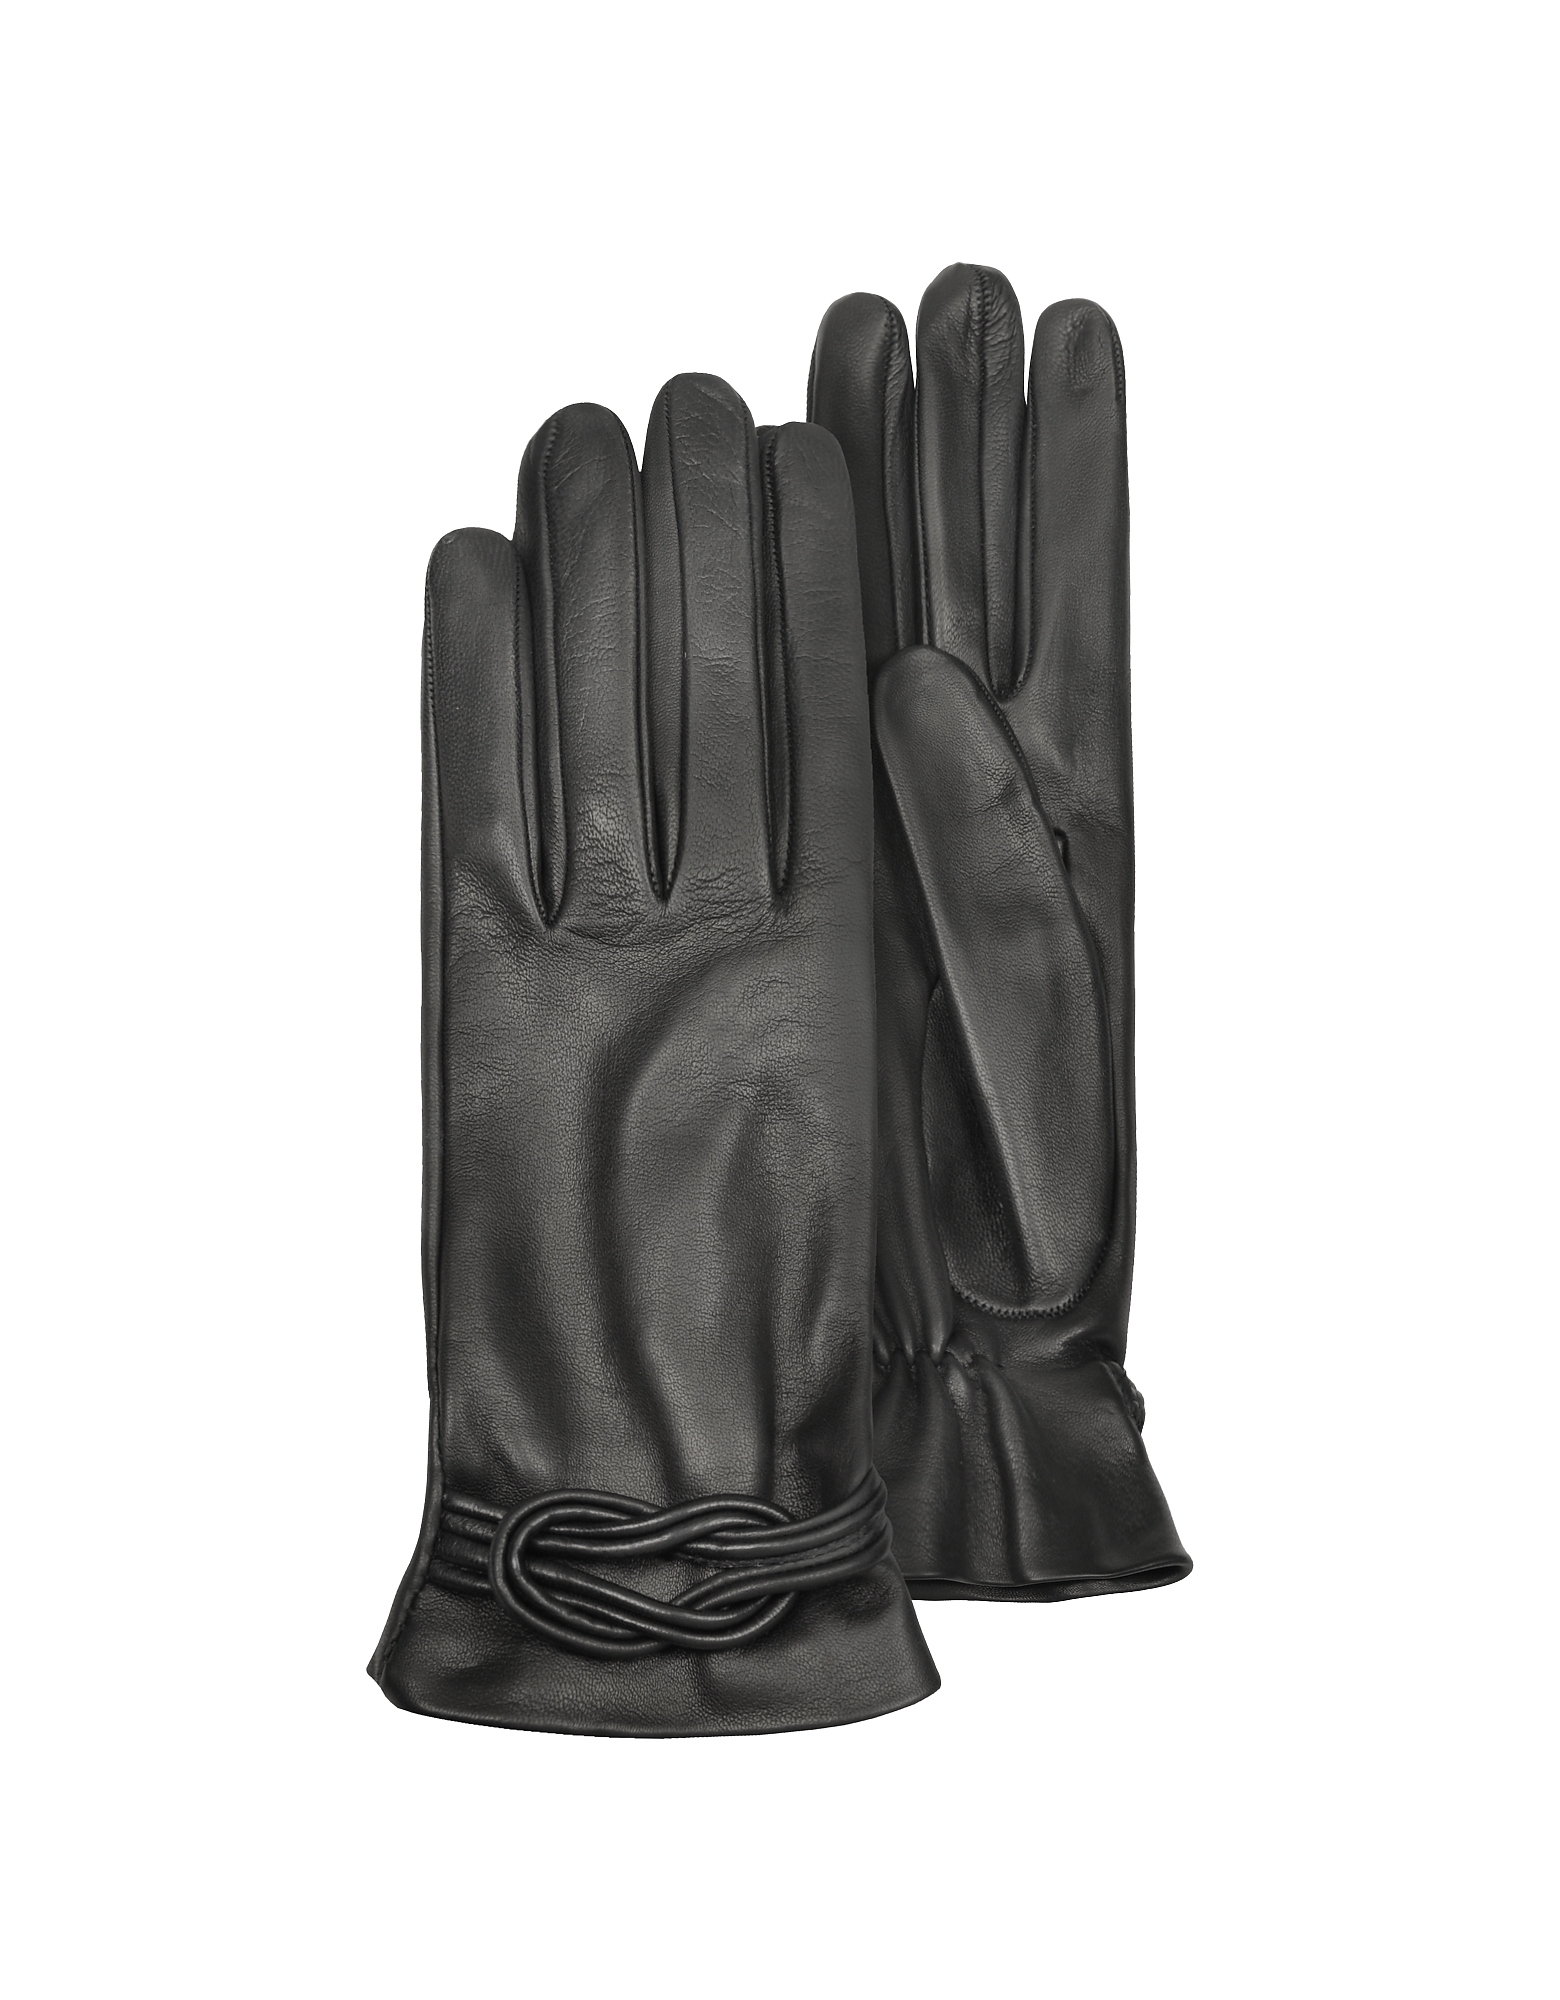 Forzieri Women's Gloves, Women's Black Leather Gloves w/ Knot